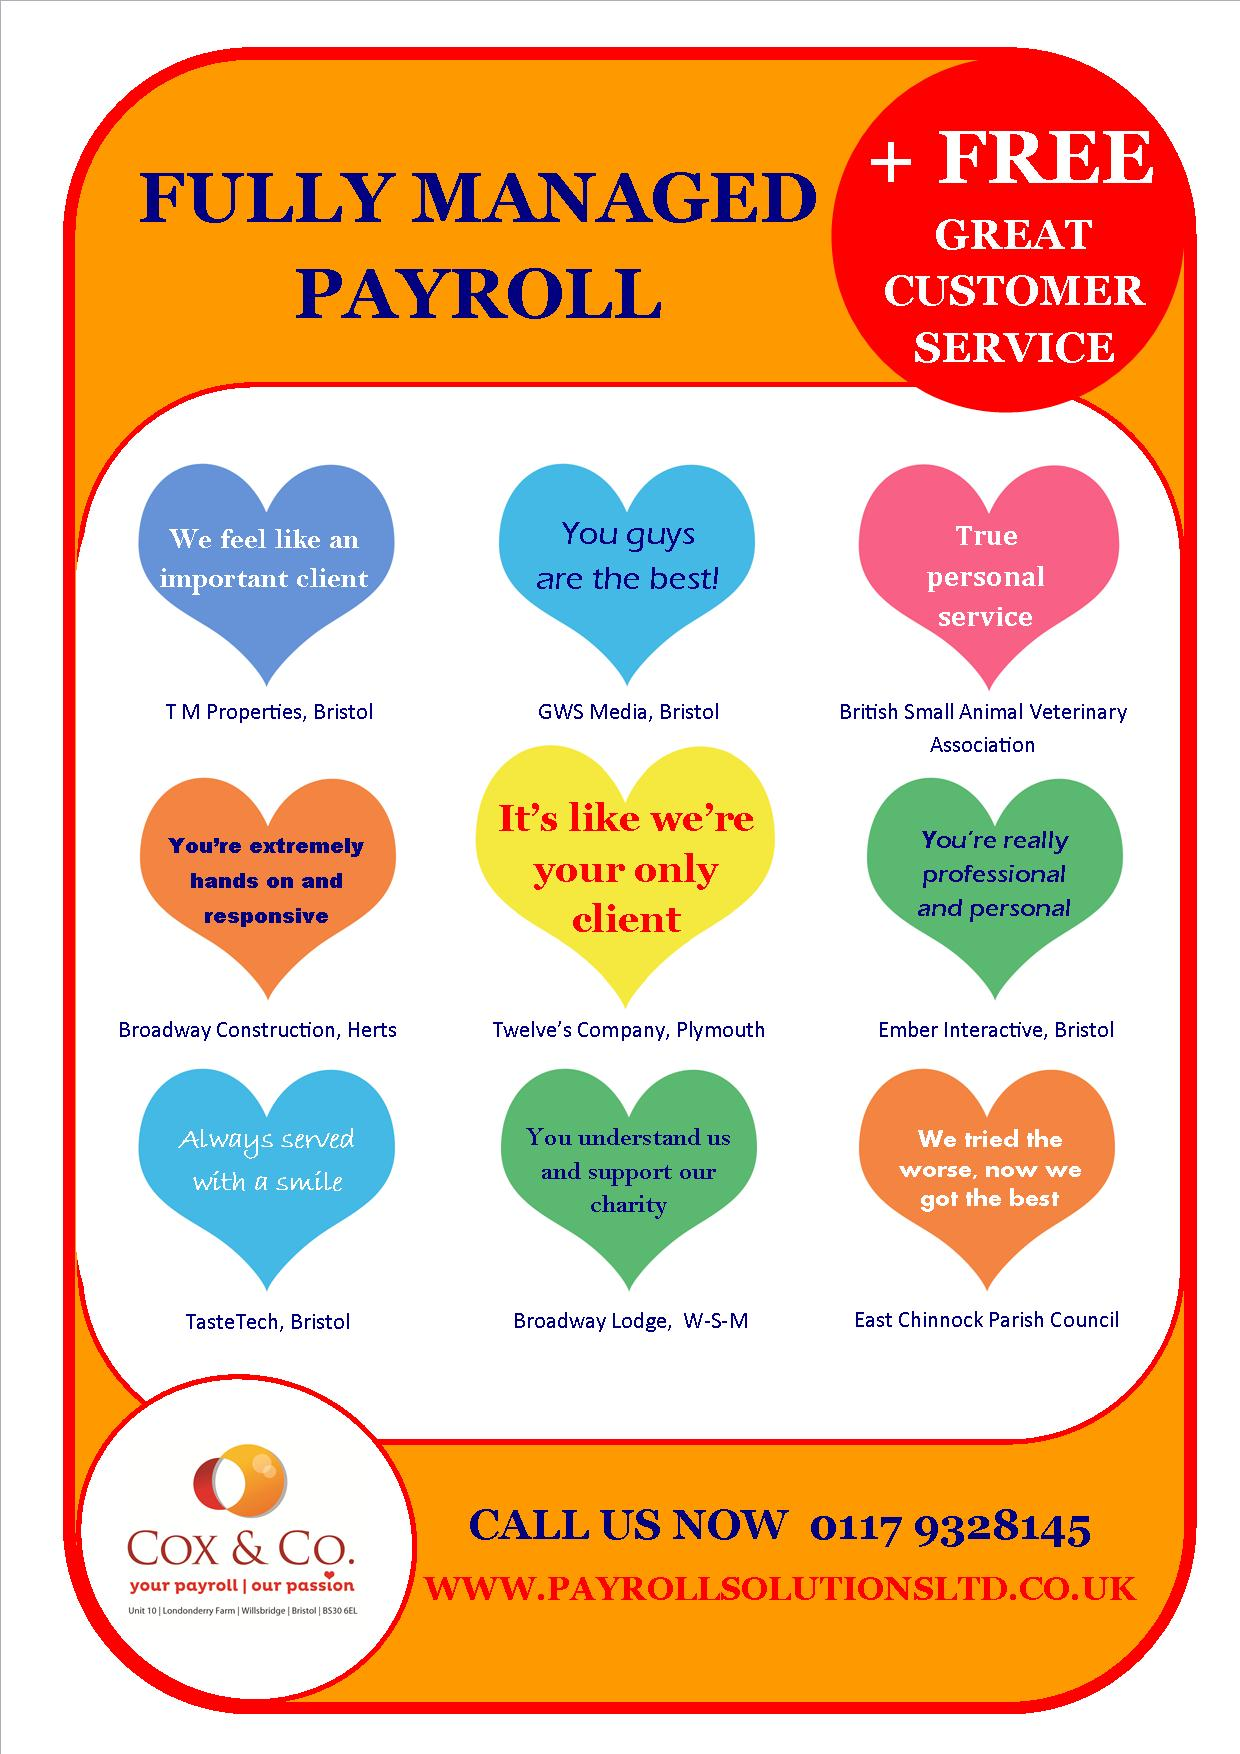 9 great payroll customer service comments from our clients